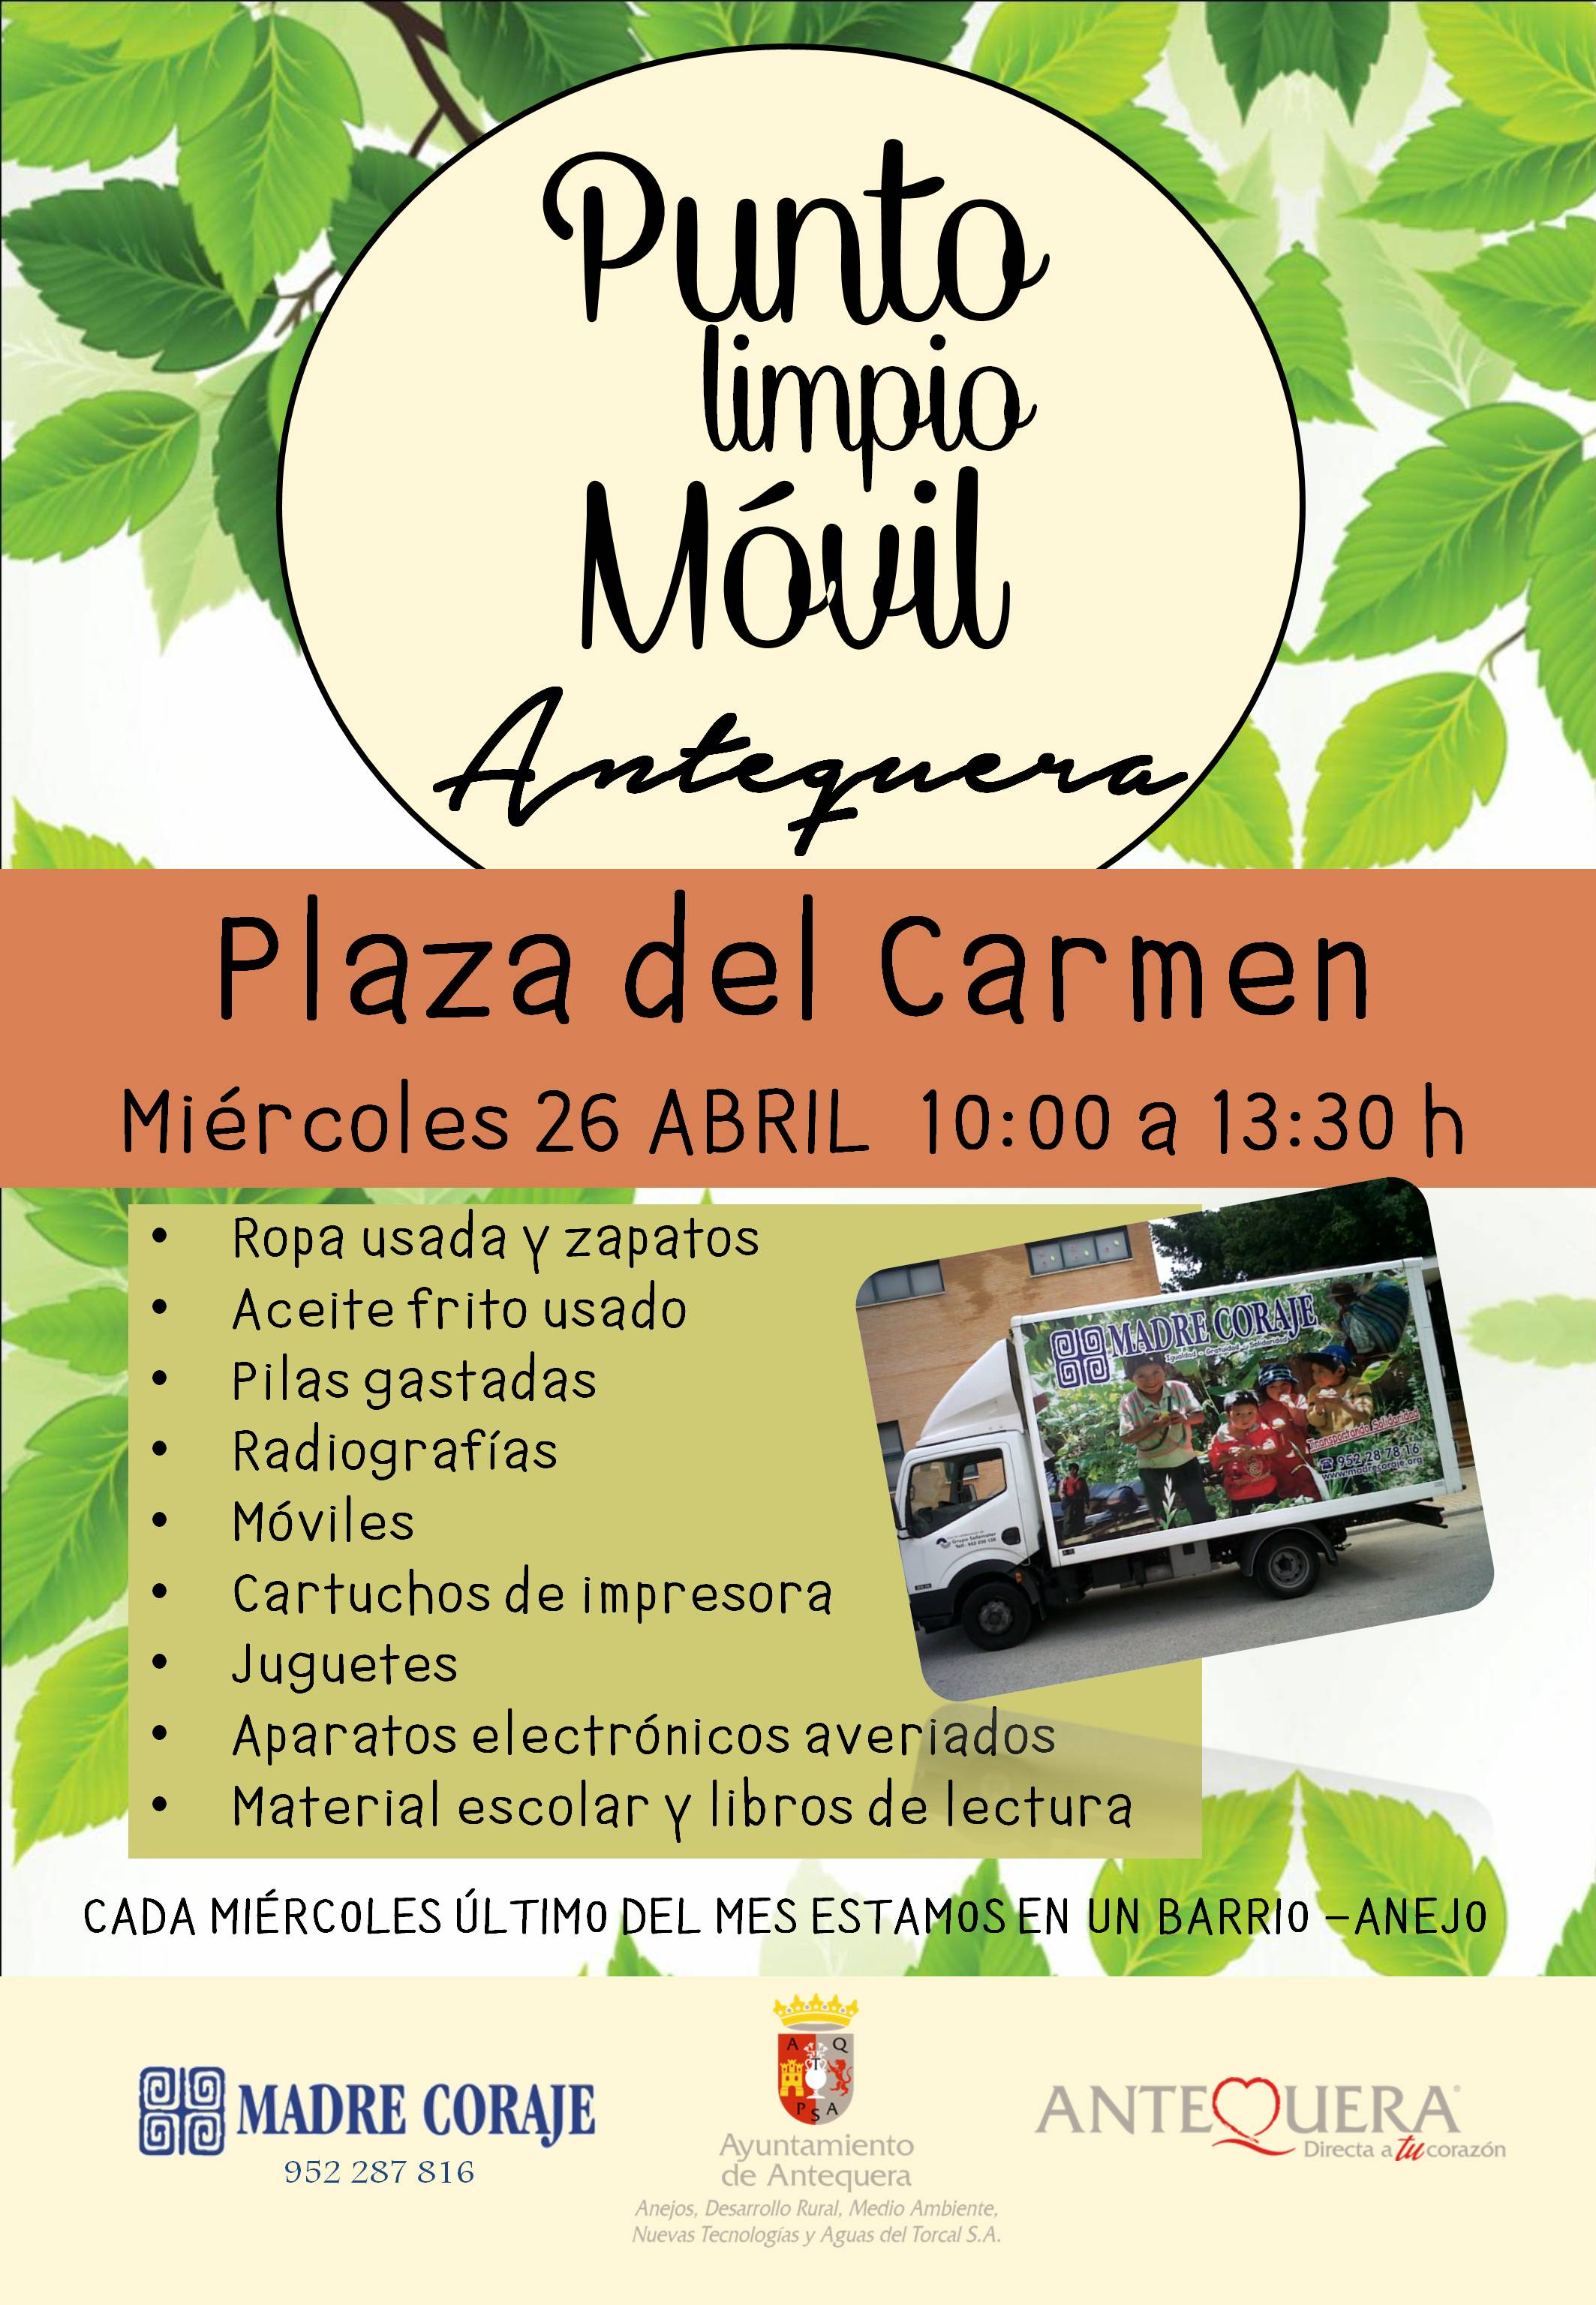 Cartel Punto Limpio Movil PLAZA DEL CARMEN ABRIL 2017